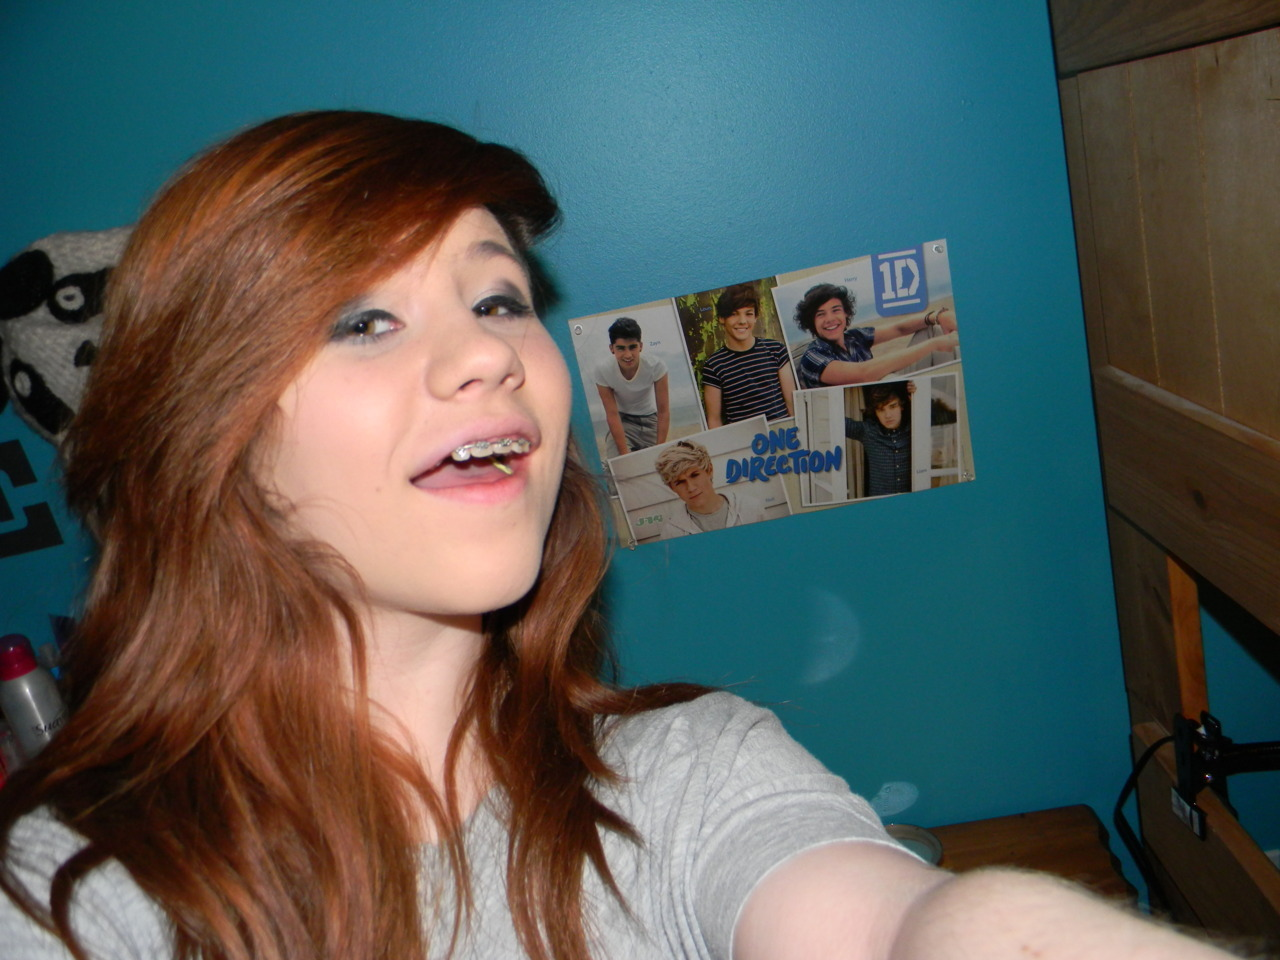 Me hanging out with the boys <33333333